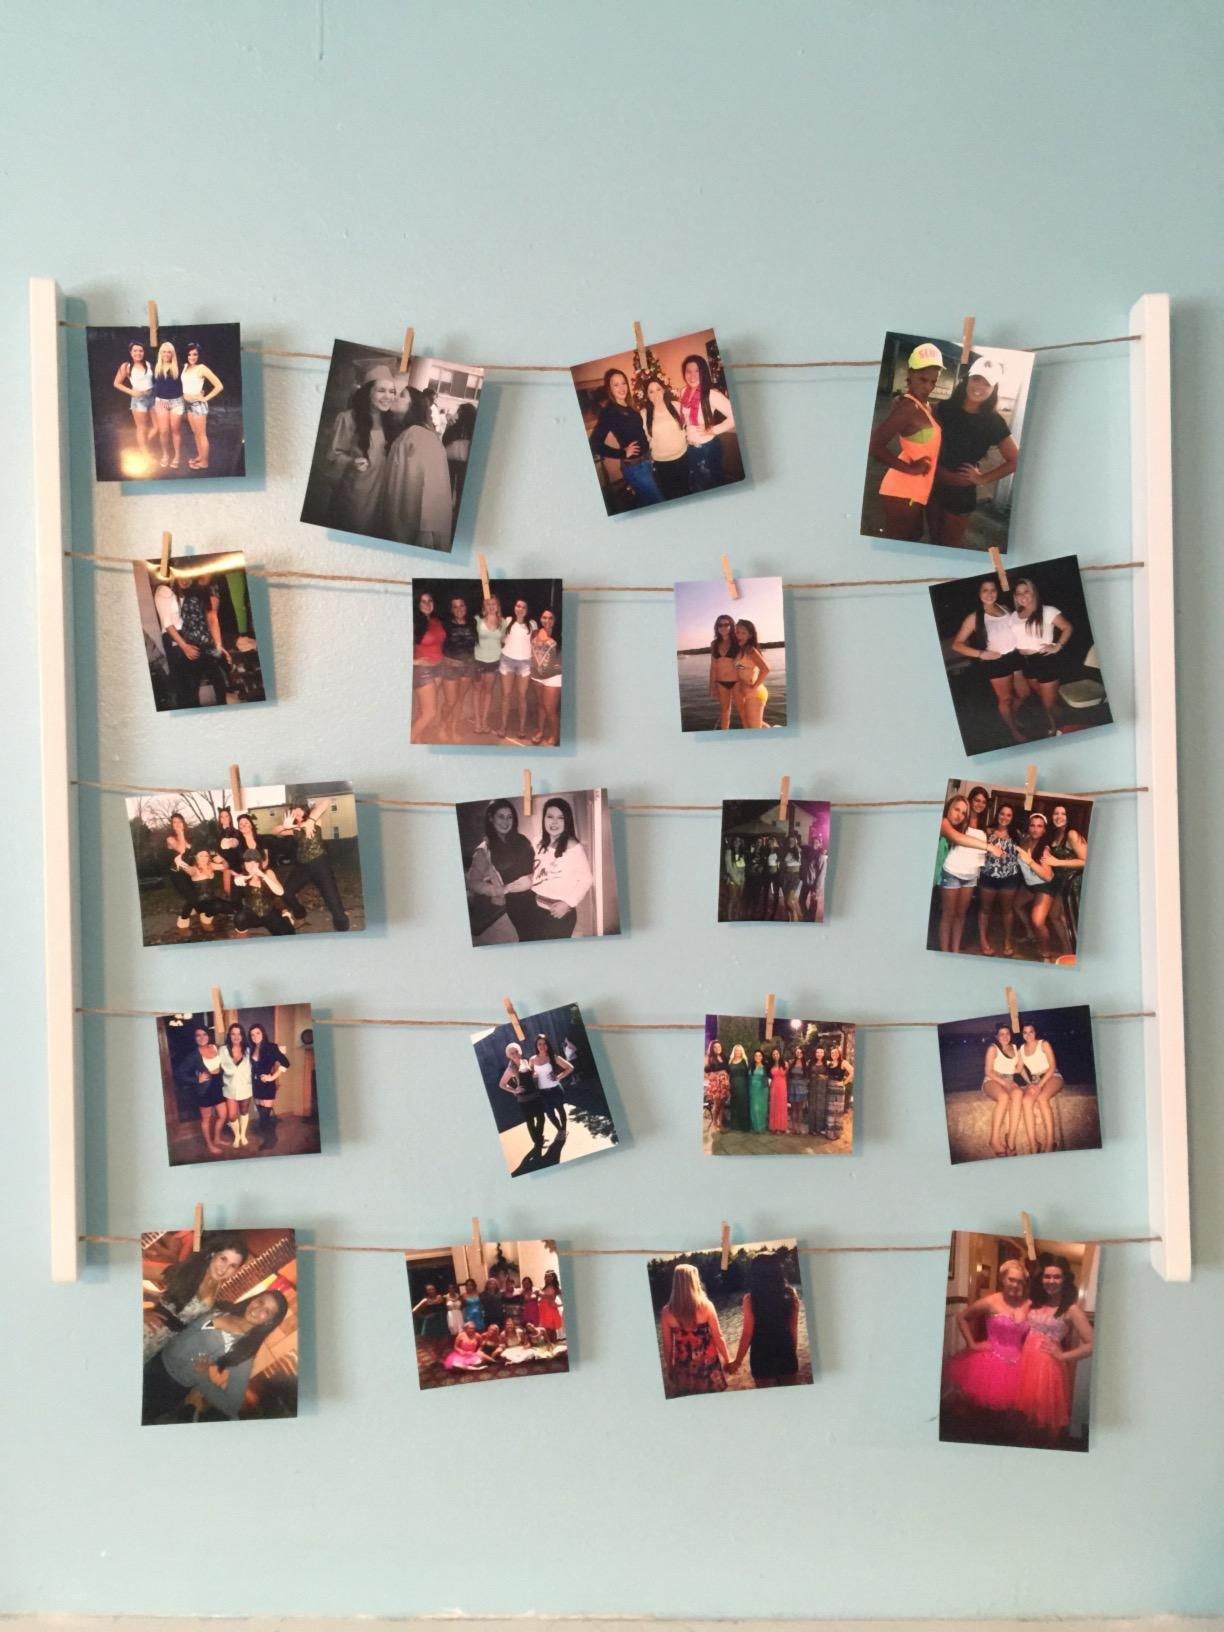 Amazonsmile Umbra Hangit Photo Display Diy Picture Frames Collage Set Includes Picture Hanging Wire Twine Hanging Photos Diy Photo Display Picture Hanging